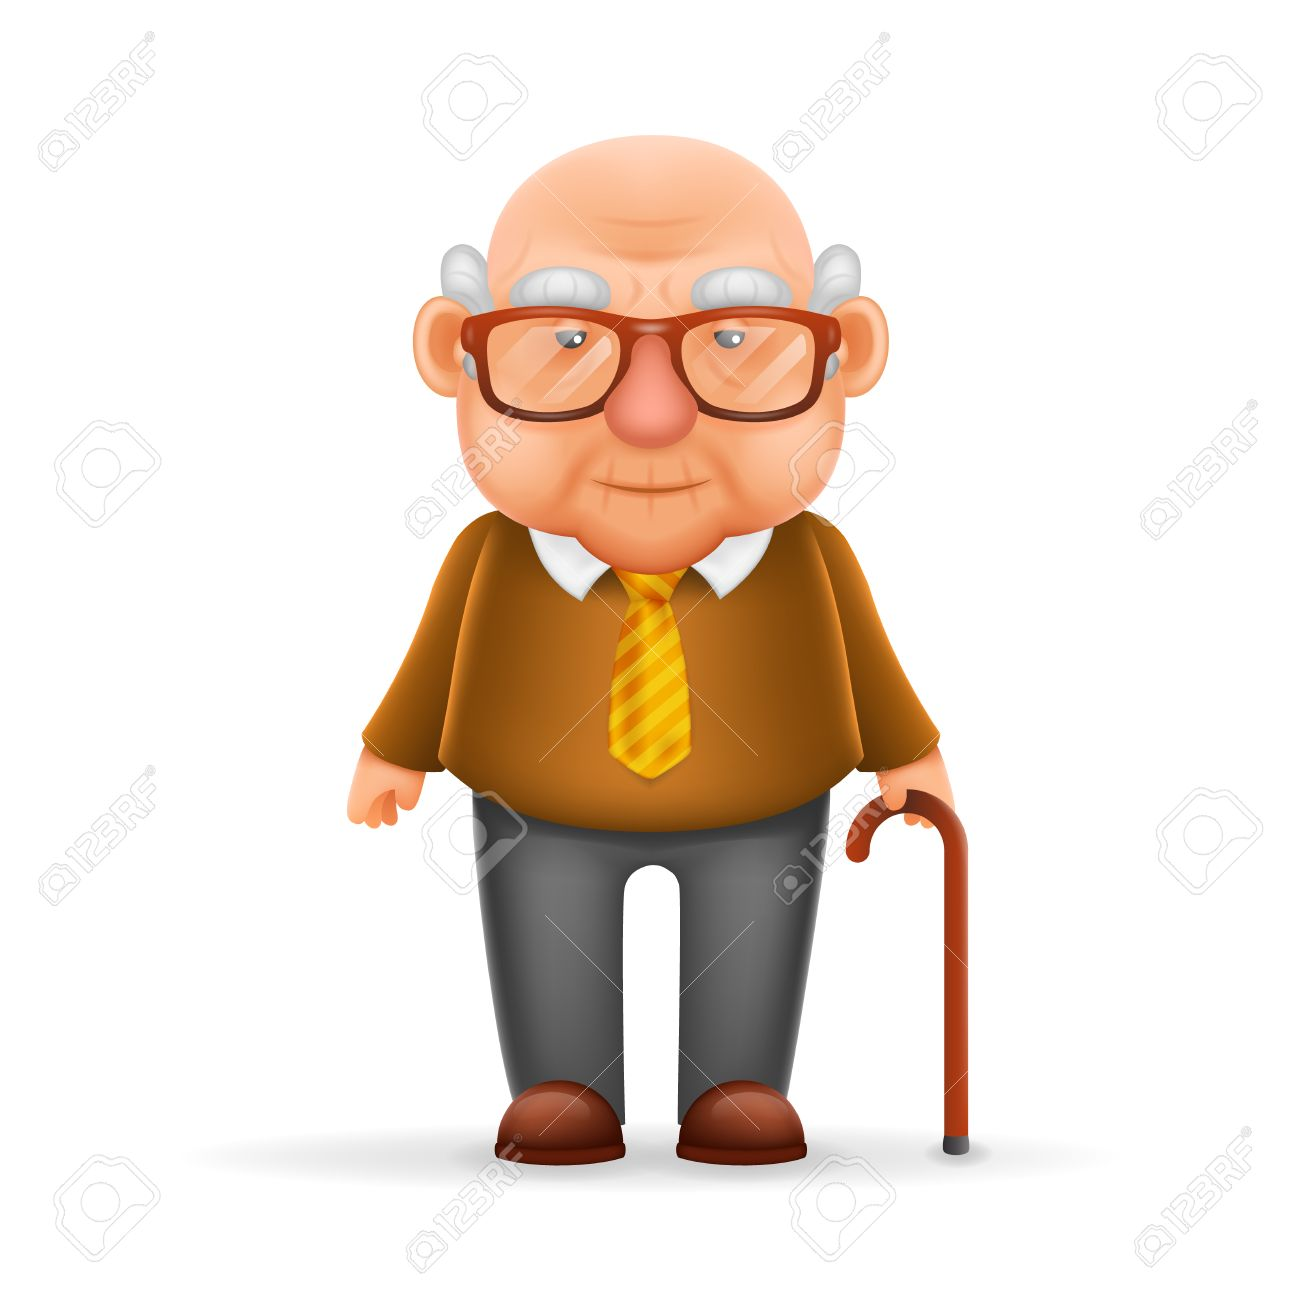 Old Man Grandfather Realistic Cartoon Character Design Isolated Vector Illustrator - 66926500